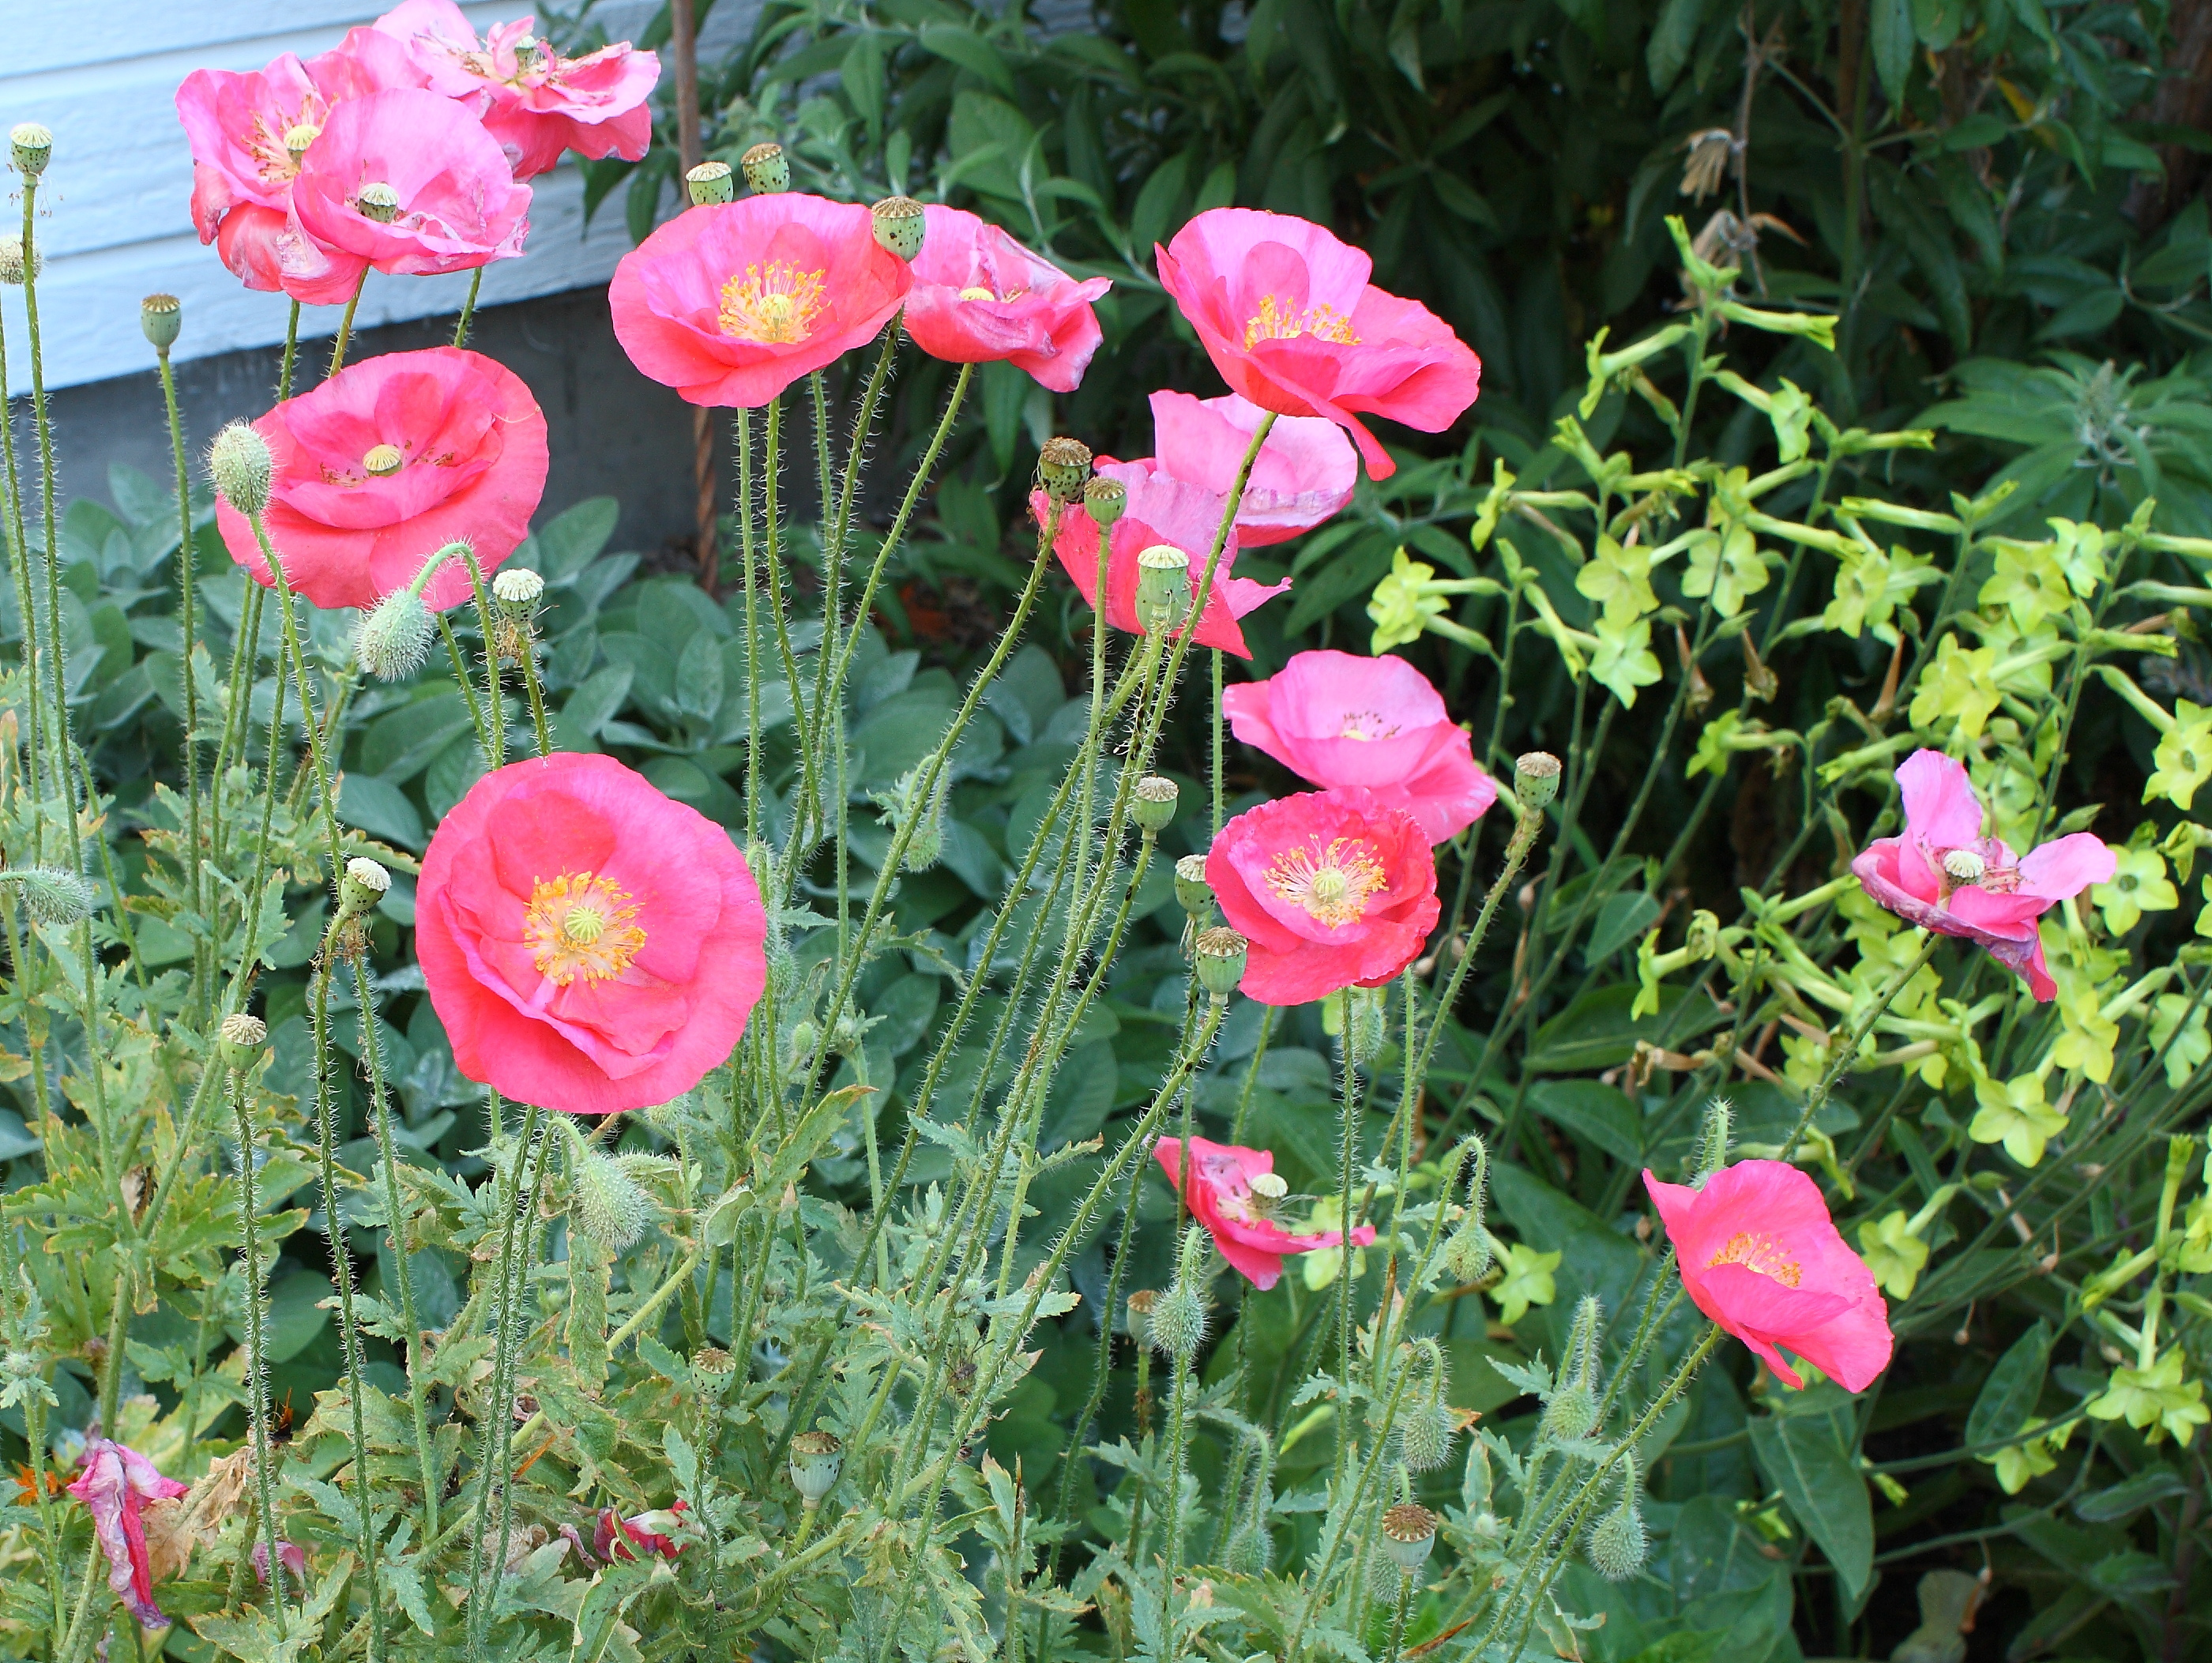 Growing poppies in the garden somehow mightylinksfo